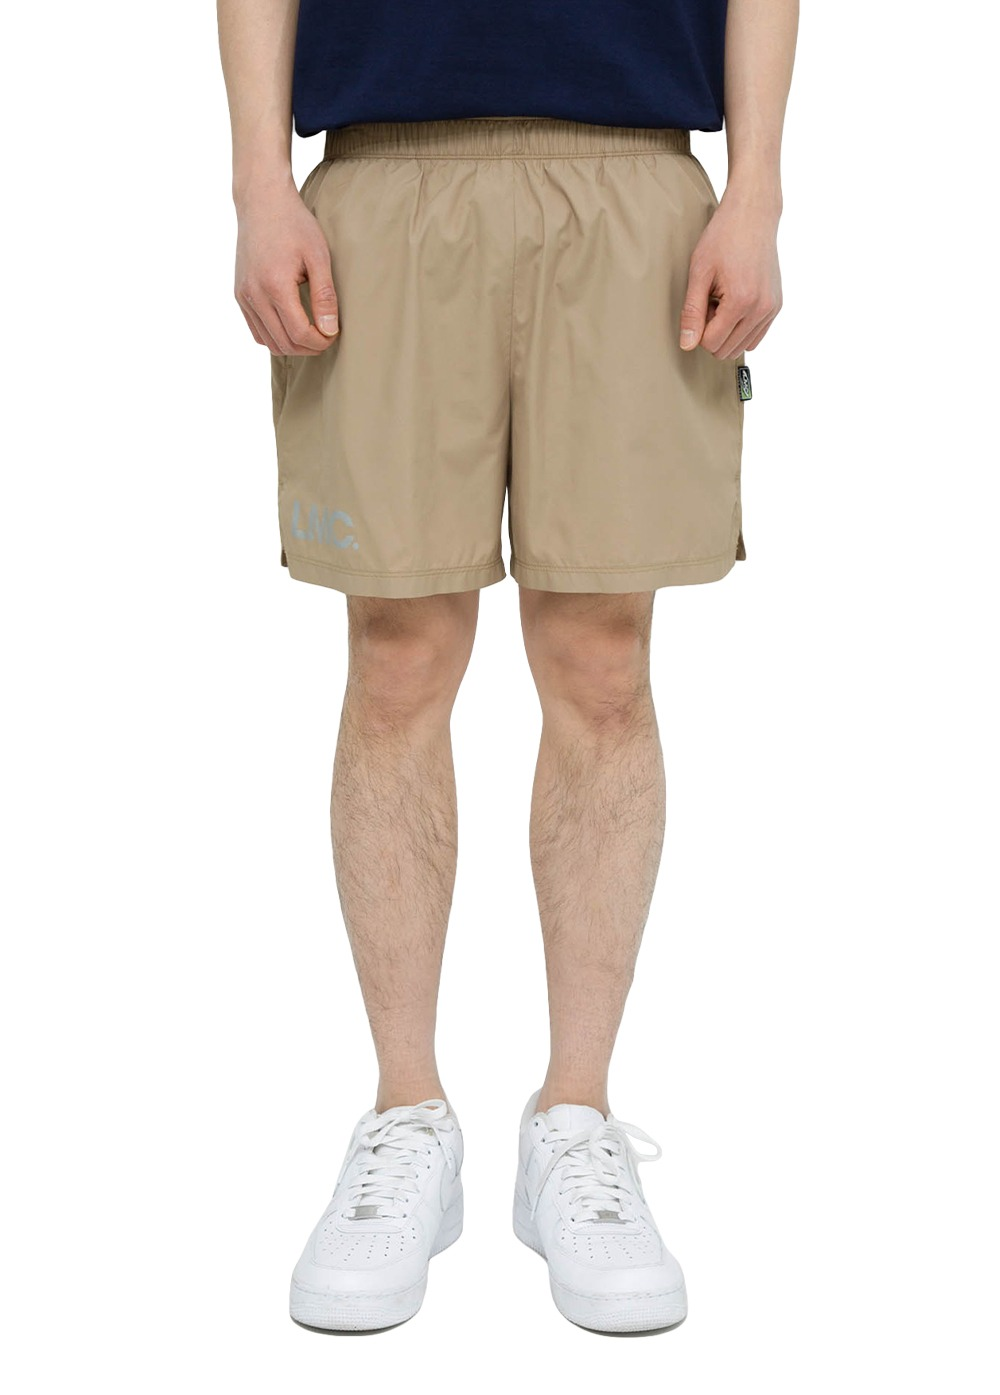 LMC ACTIVE GEAR SPORTS SHORTS beige